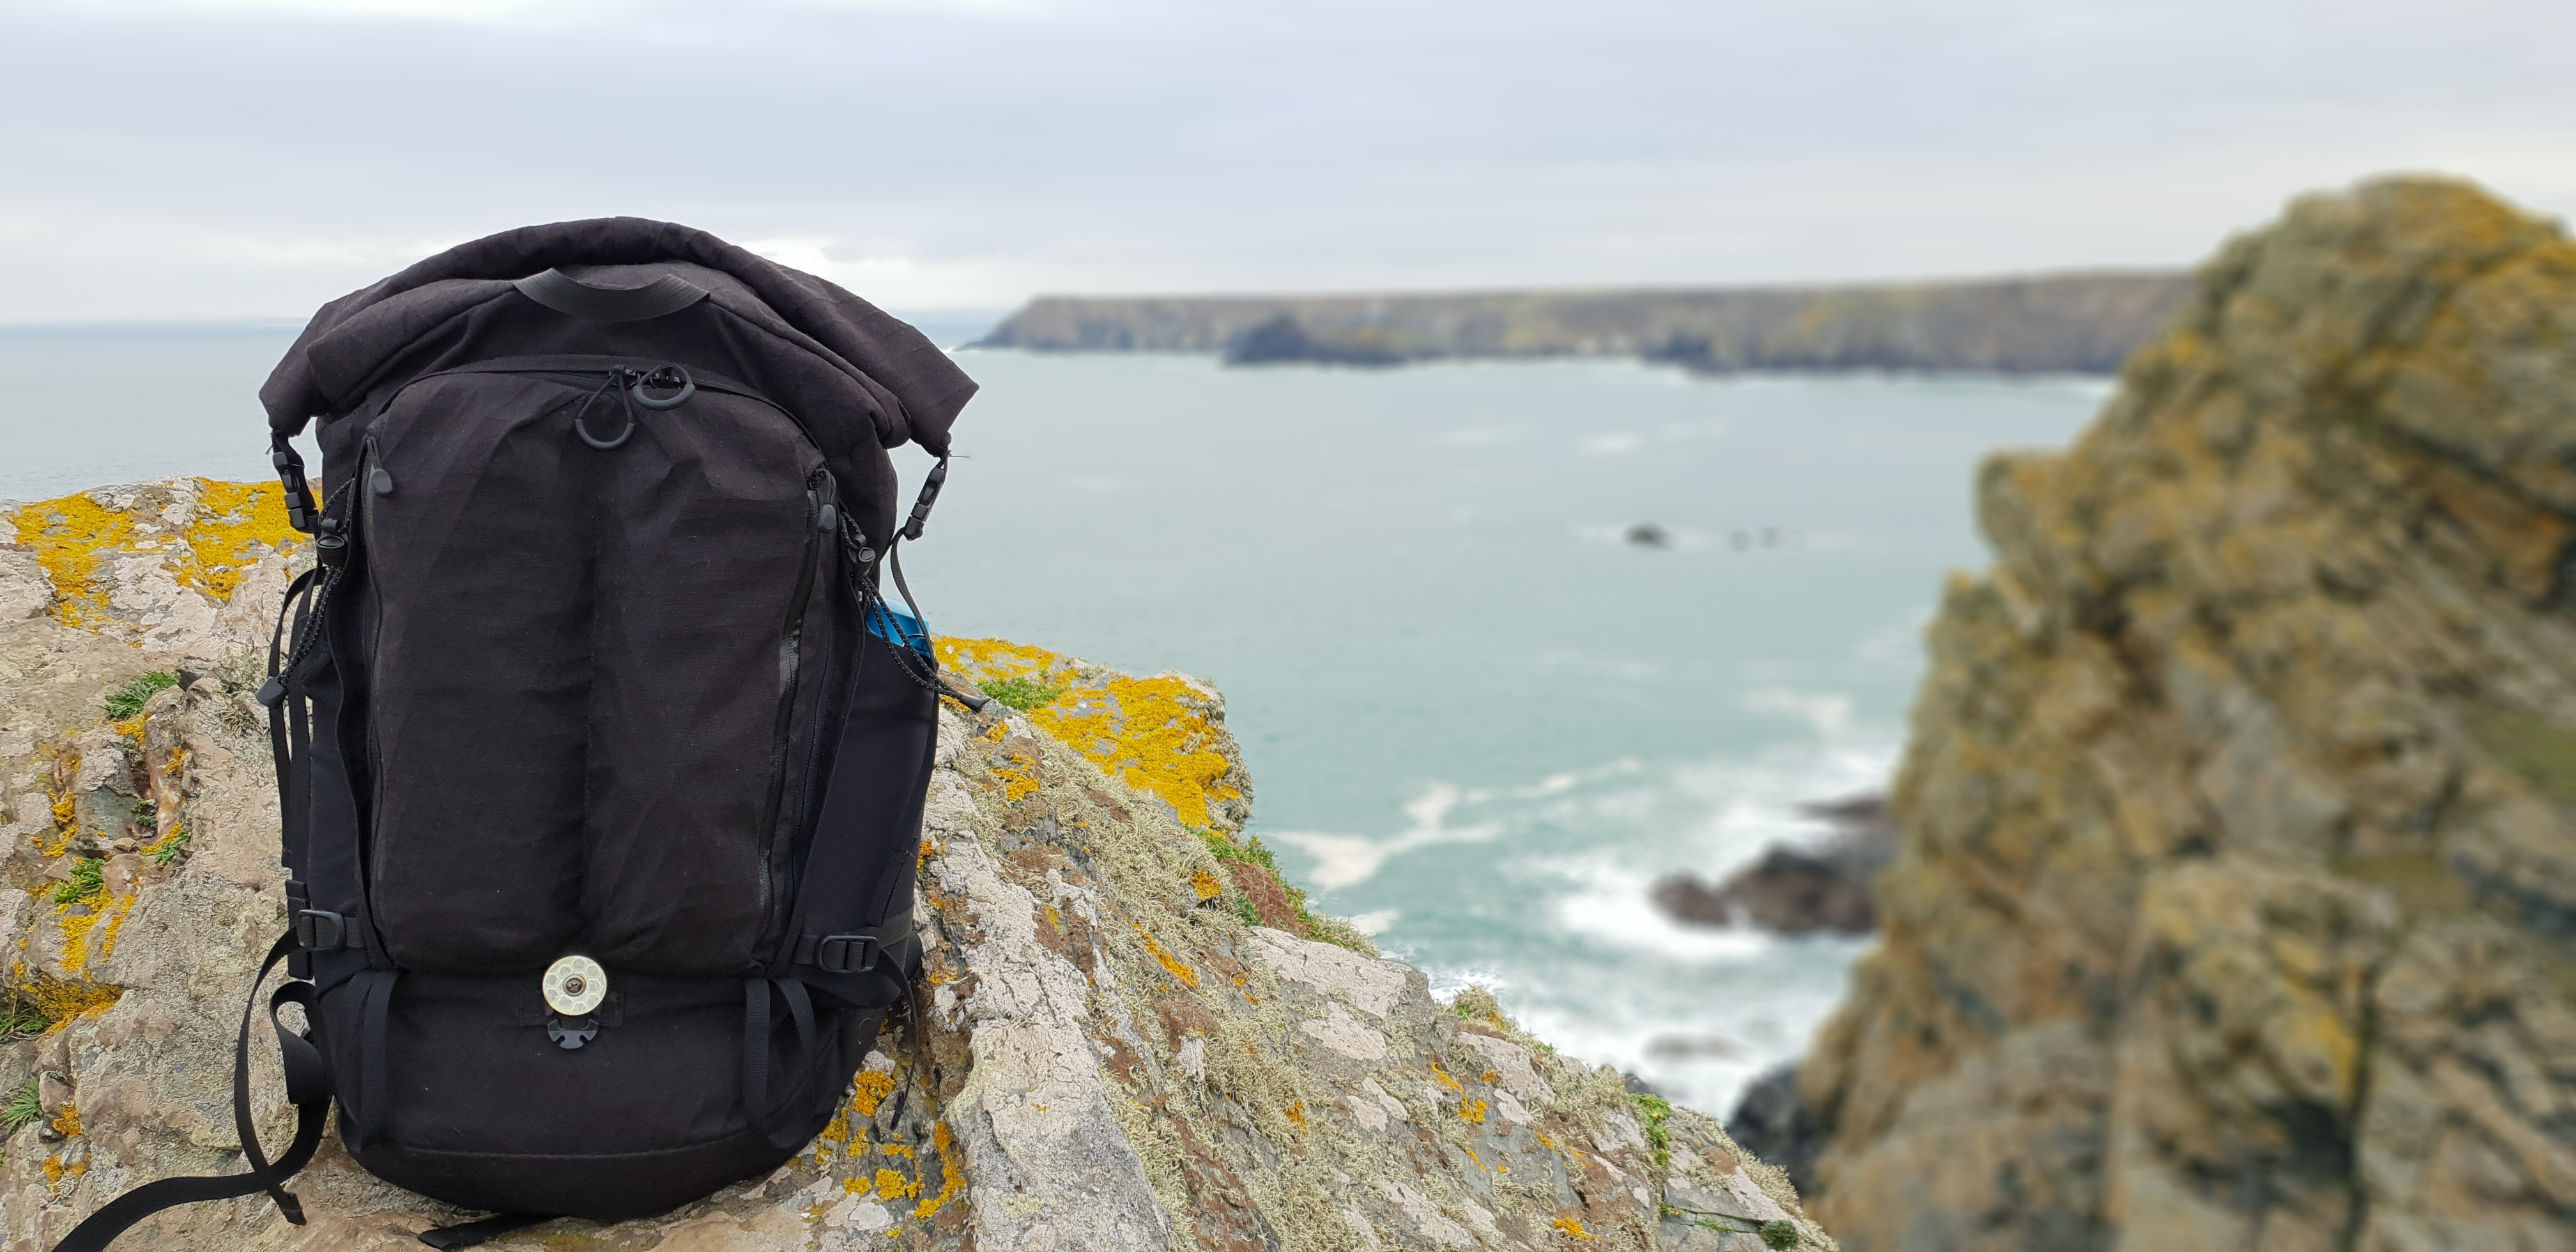 Remote Equipment Alpha 31 backpack designer interview outdoors review